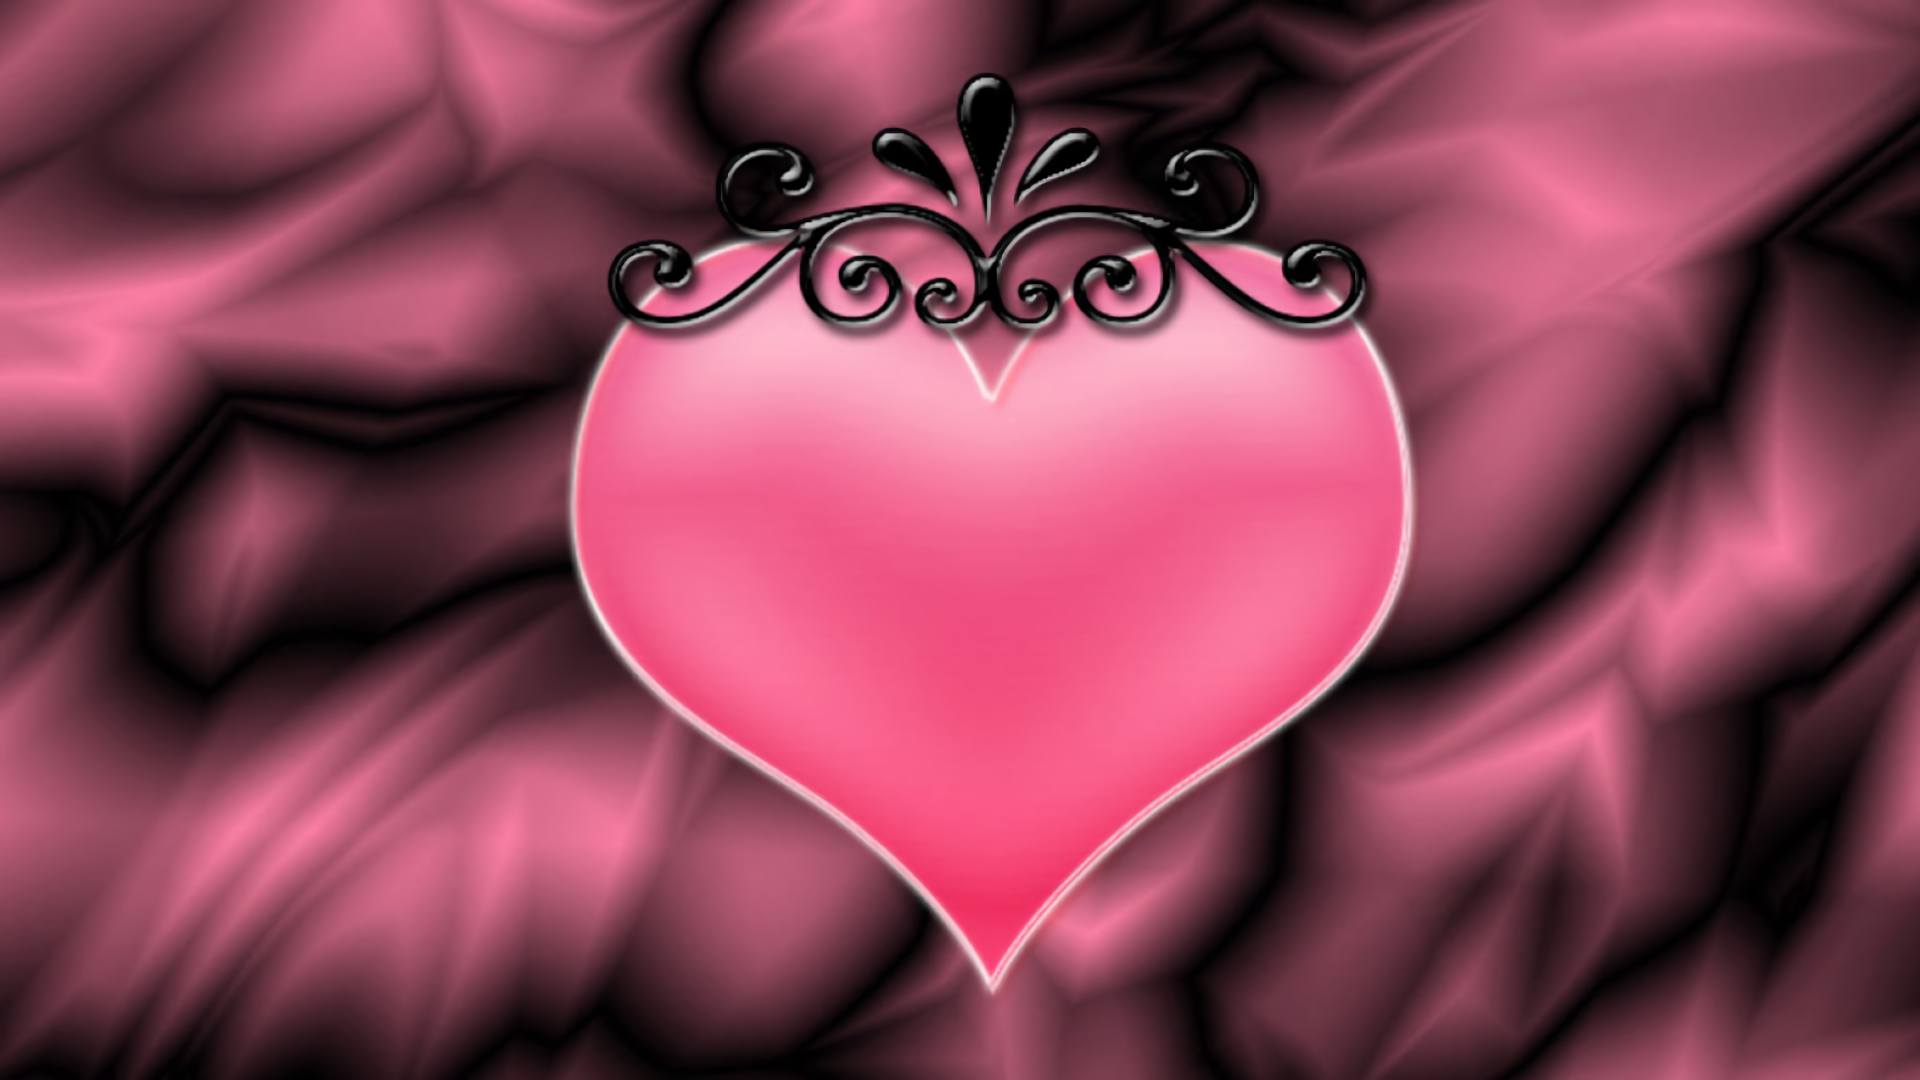 Pink crowned Heart Full HD Wallpaper and Background Image 1920x1080 ID:674739